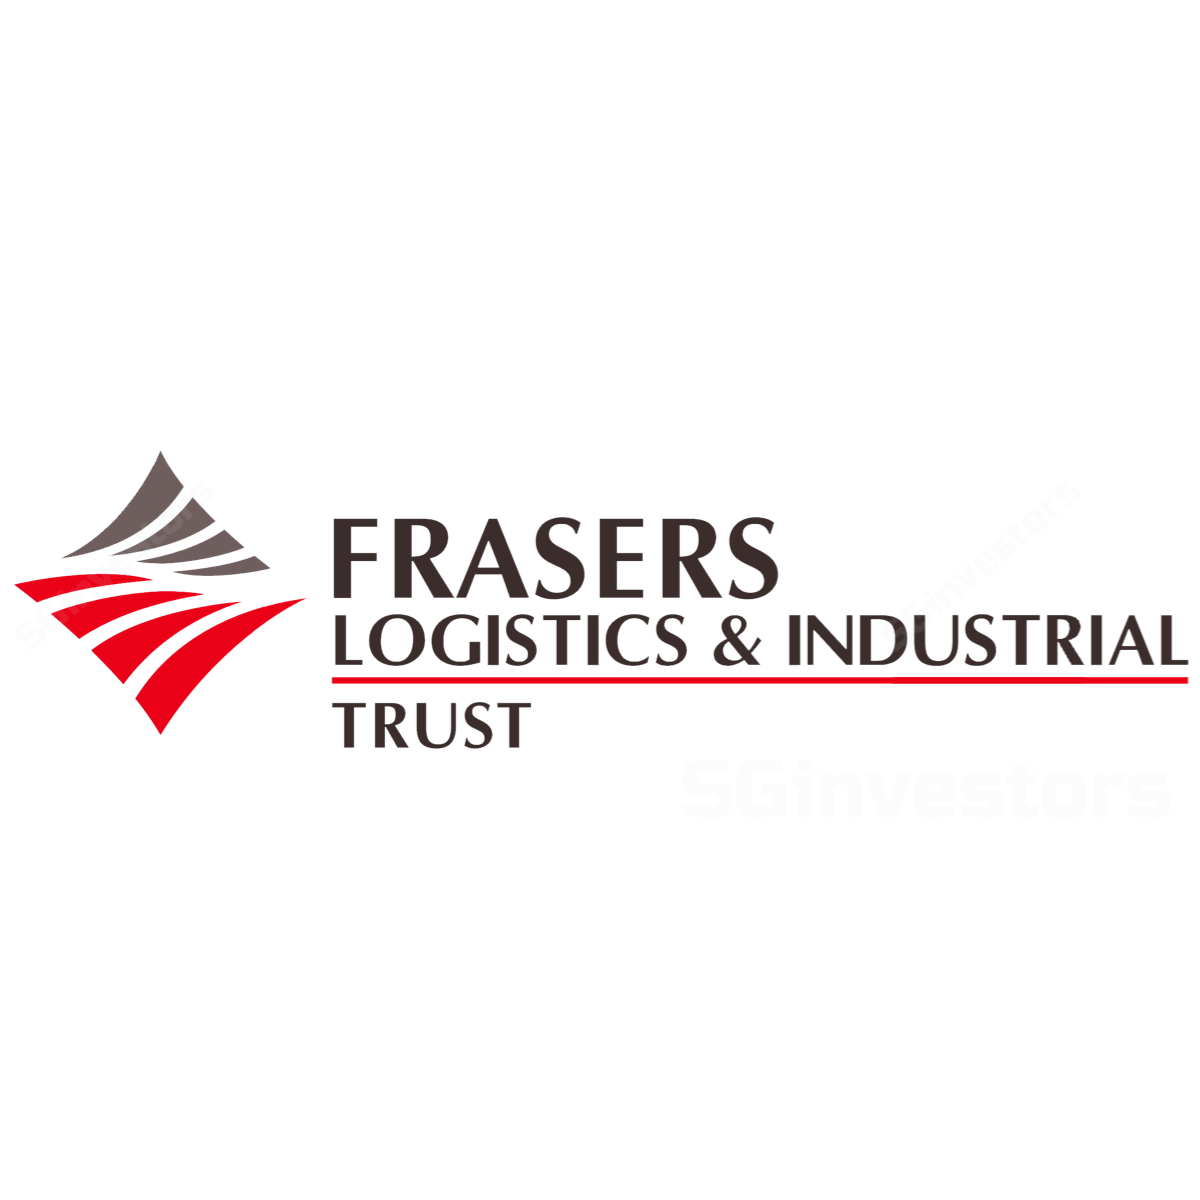 Frasers Logistics & Industrial Trust - DBS Vickers 2018-01-29: A Sexy Growth Story